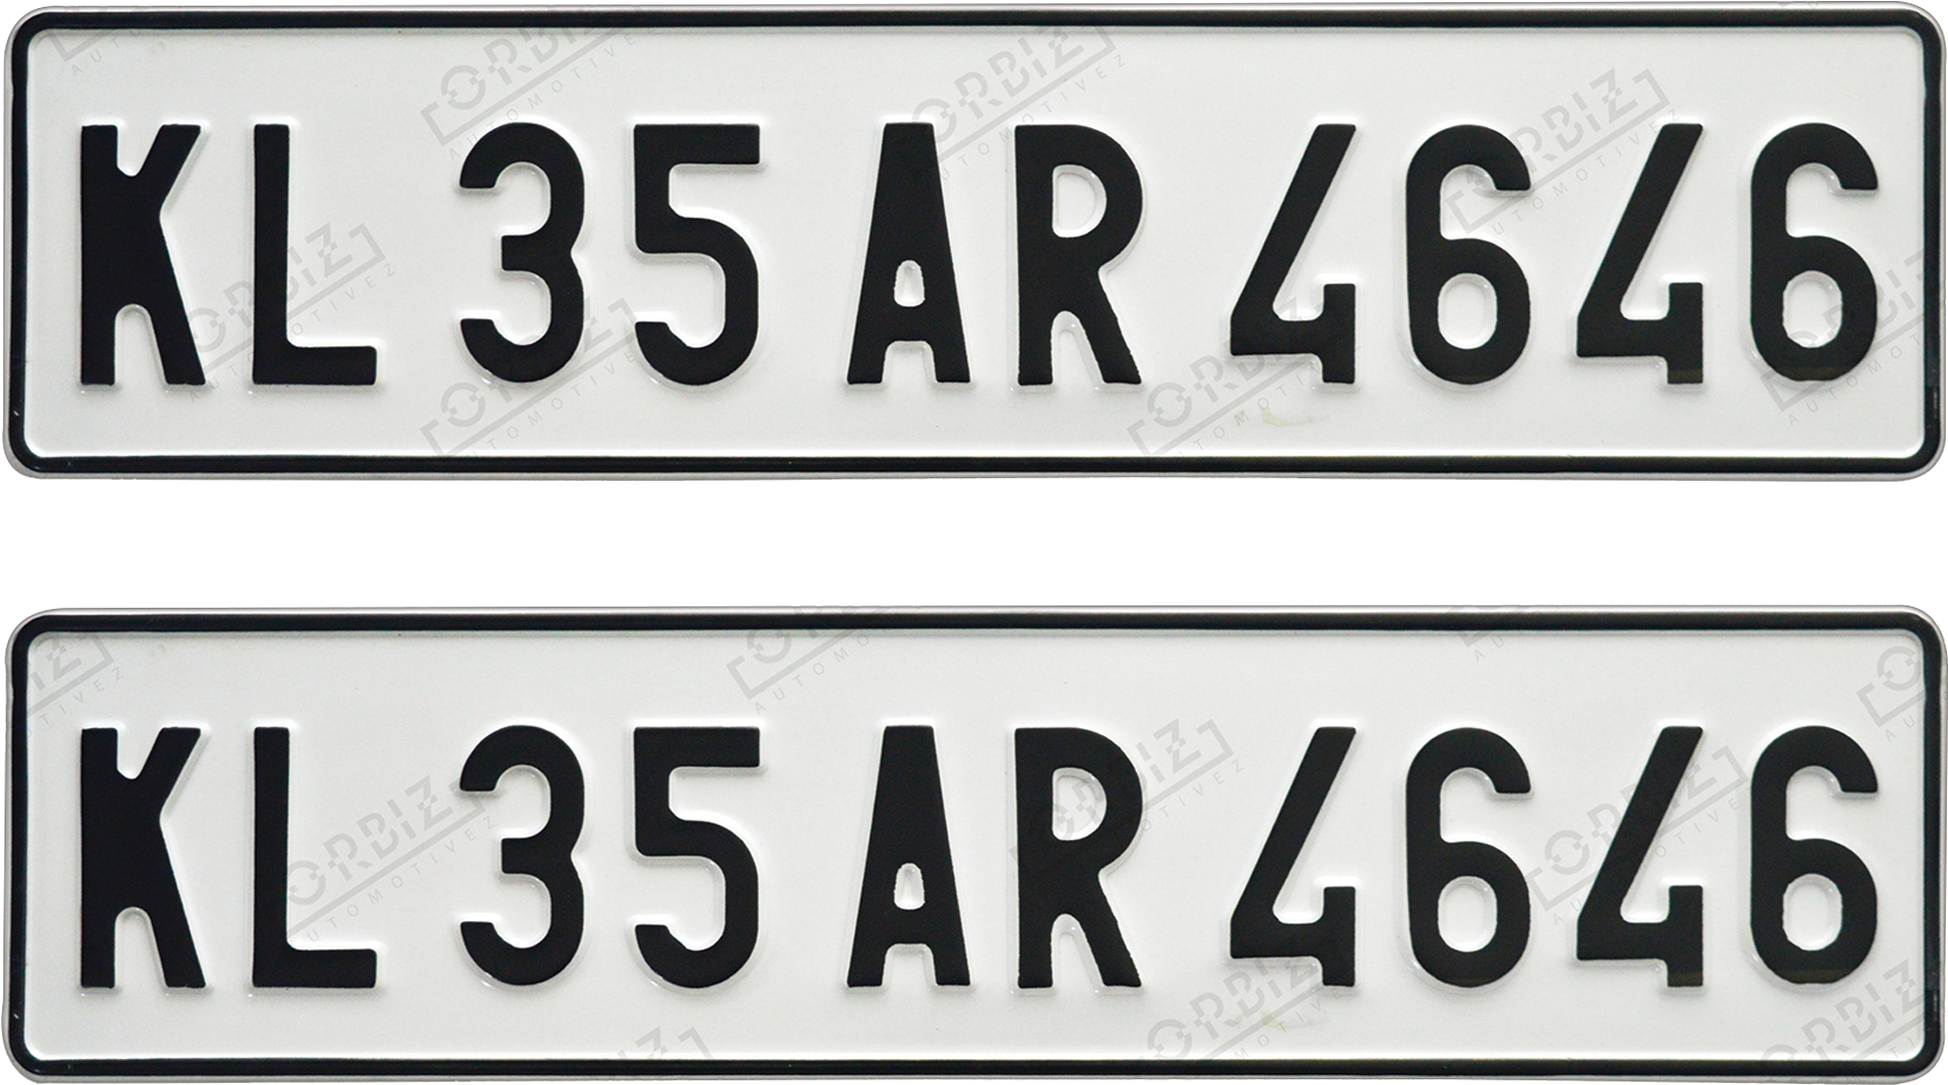 Number Plate Suppliers >> Malawi Car Number Plate Malawi Car Number Plate Suppliers